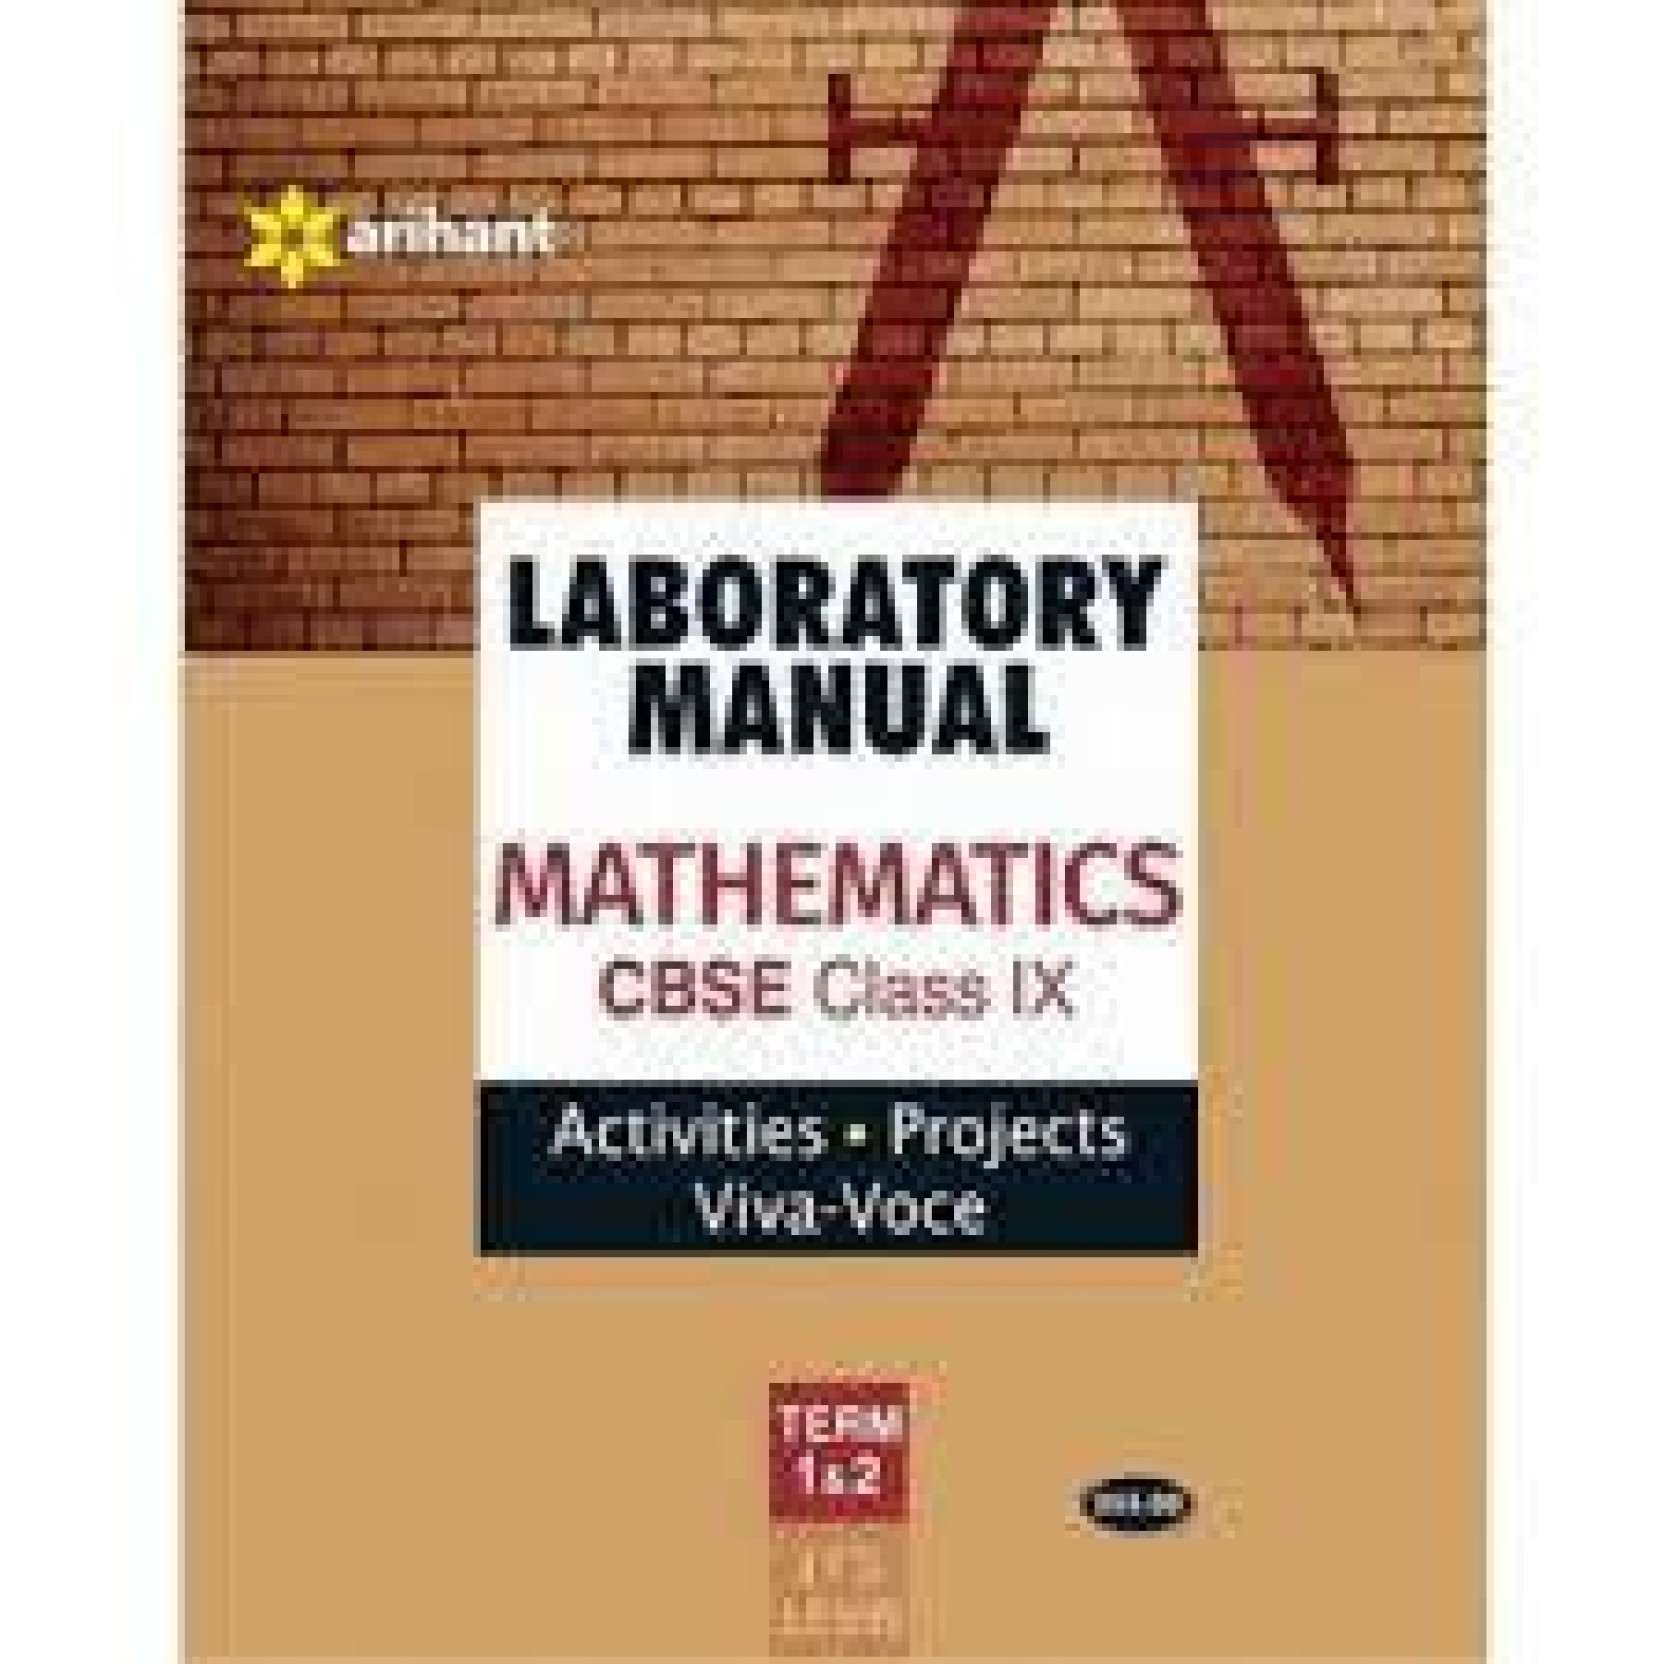 Laboratory Manual Mathematics Class 9th Term-1 & 2 [Activities|Projects|Viva.  Home